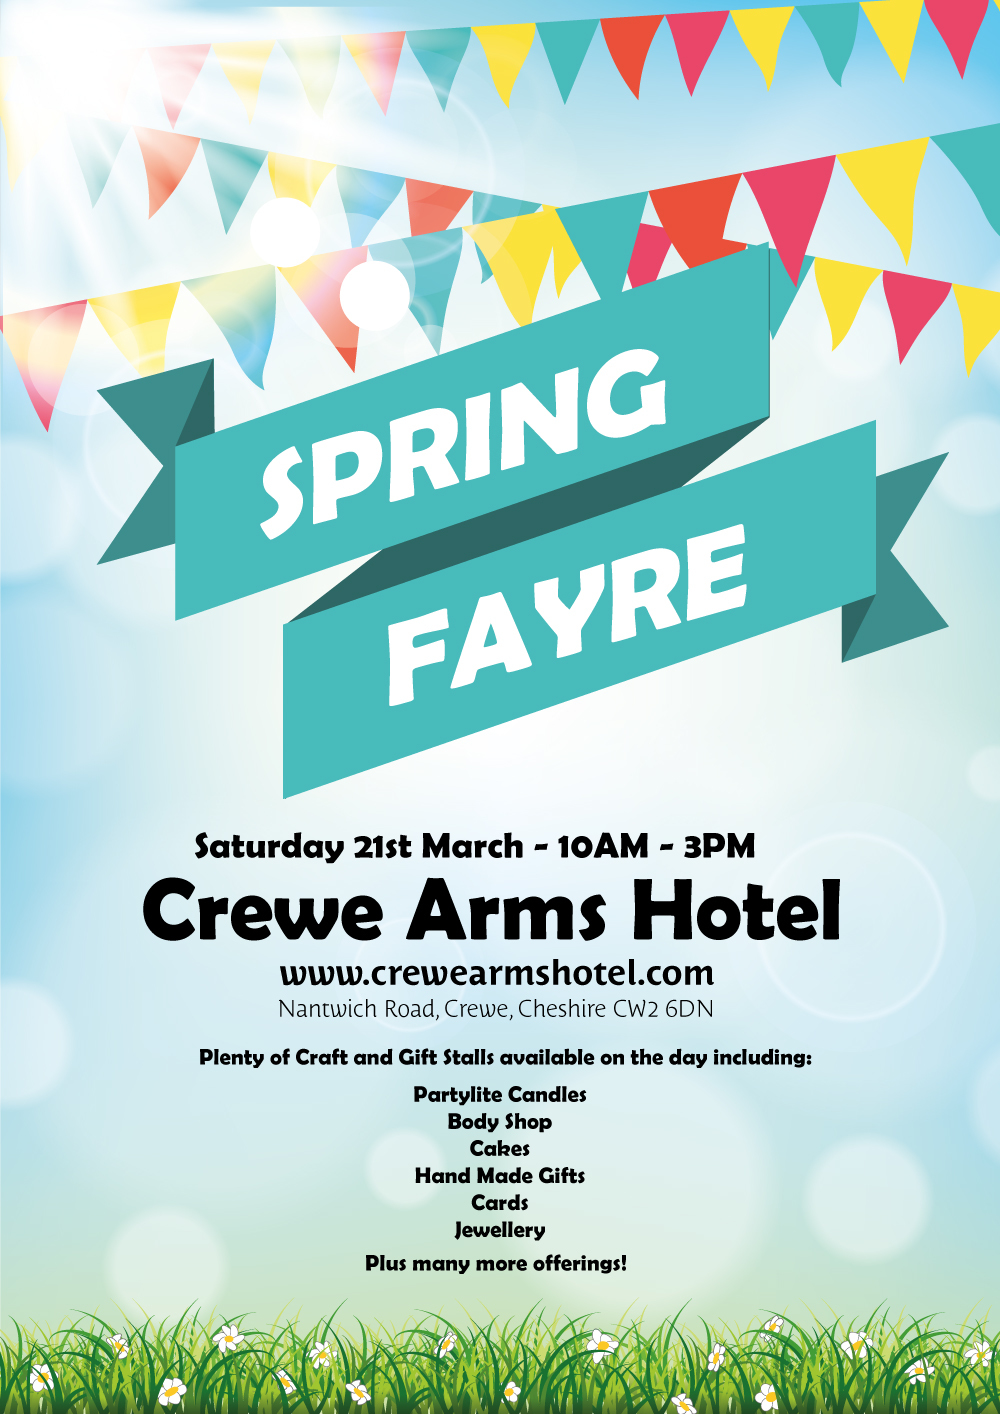 Spring Fayre poster for Crewe Arms Hotel